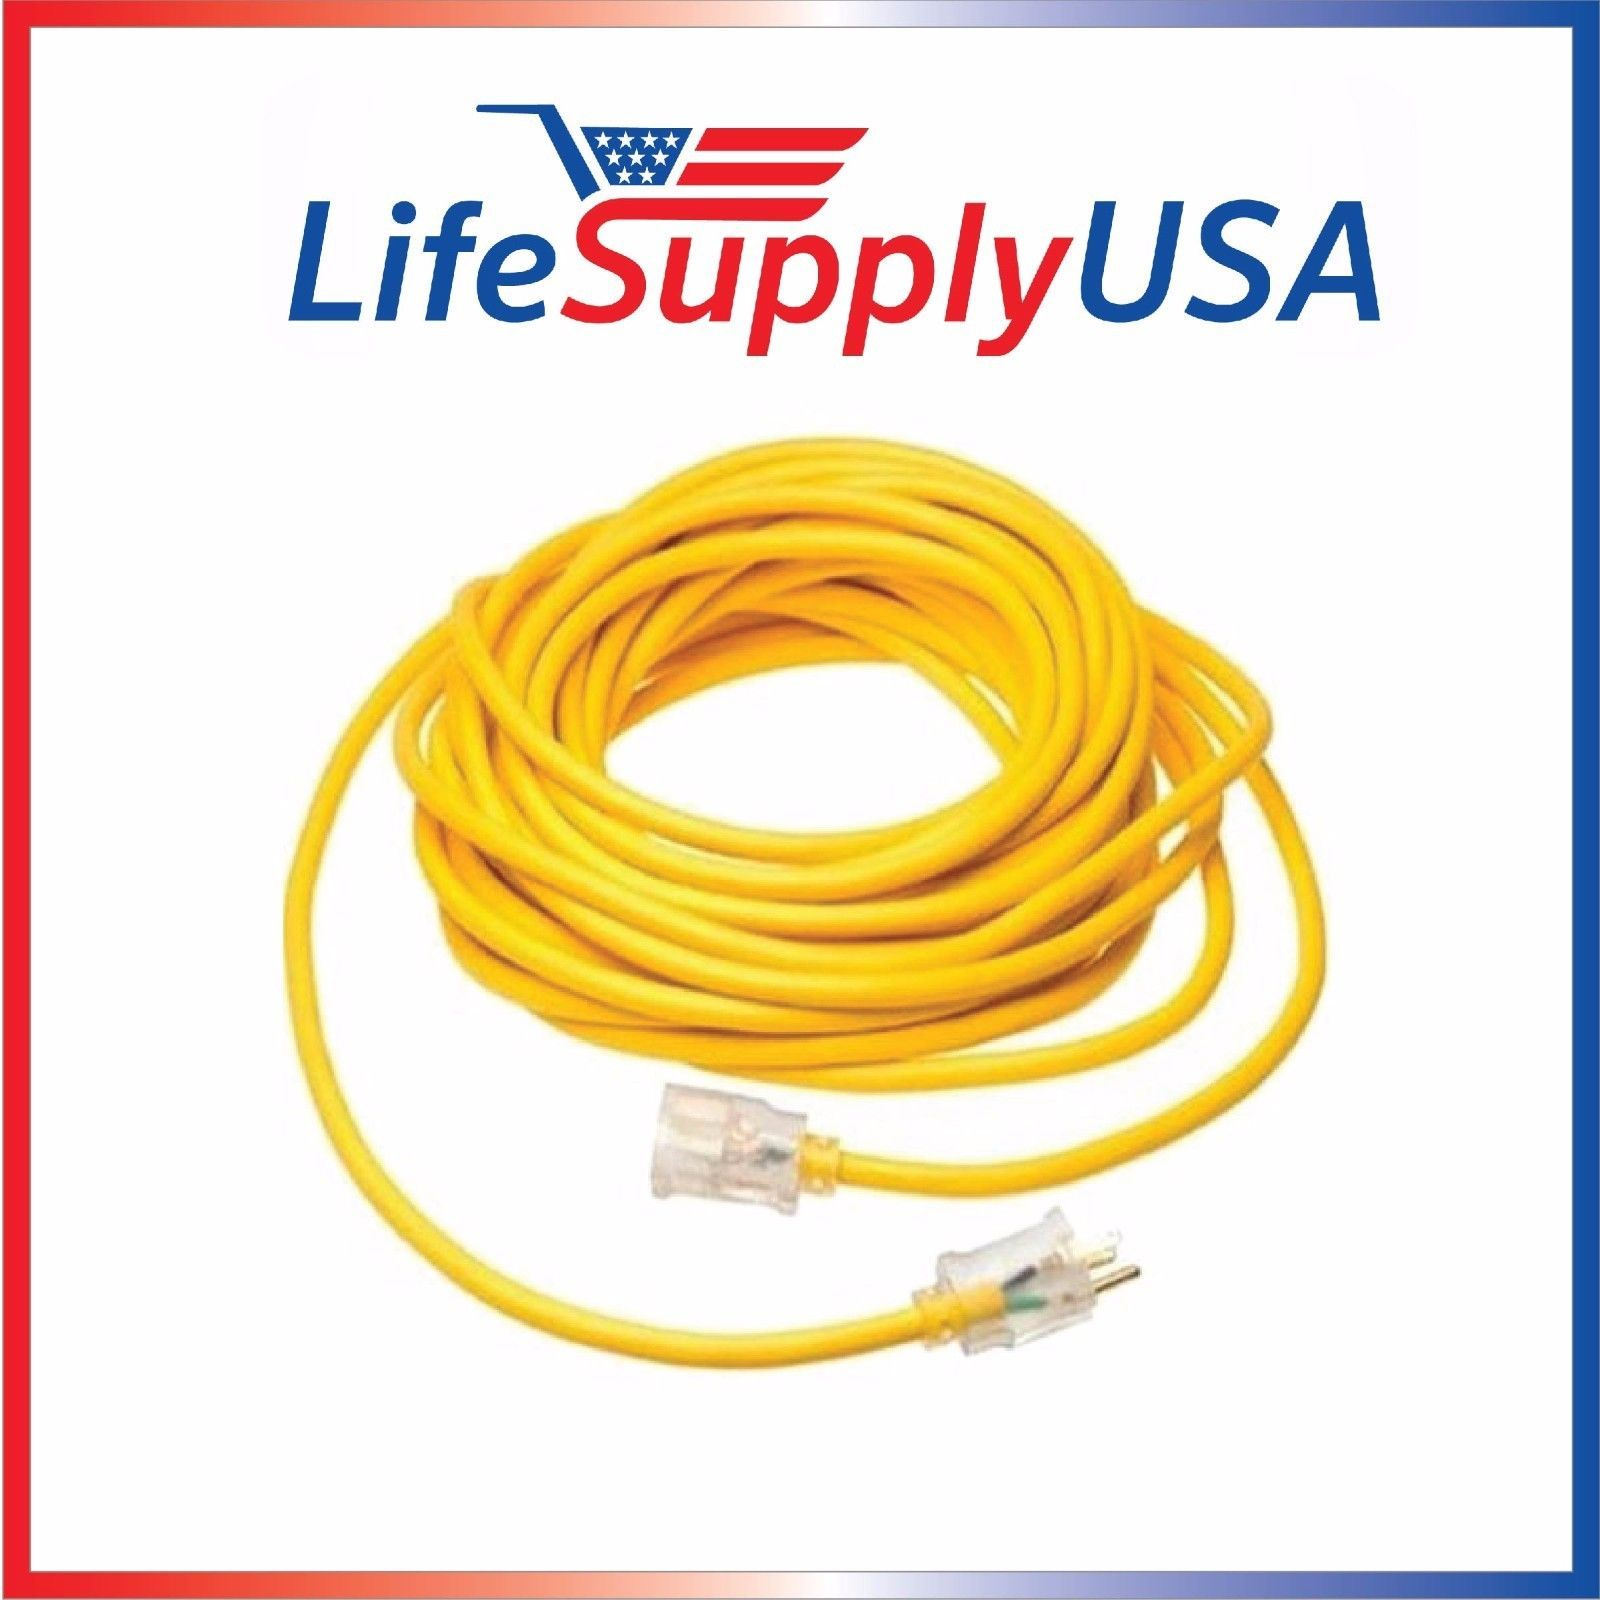 10 Pack 6 Feet 16//3 6ft 300V SJTW Extension Cord LIGHTED END Indoor//Outdoor